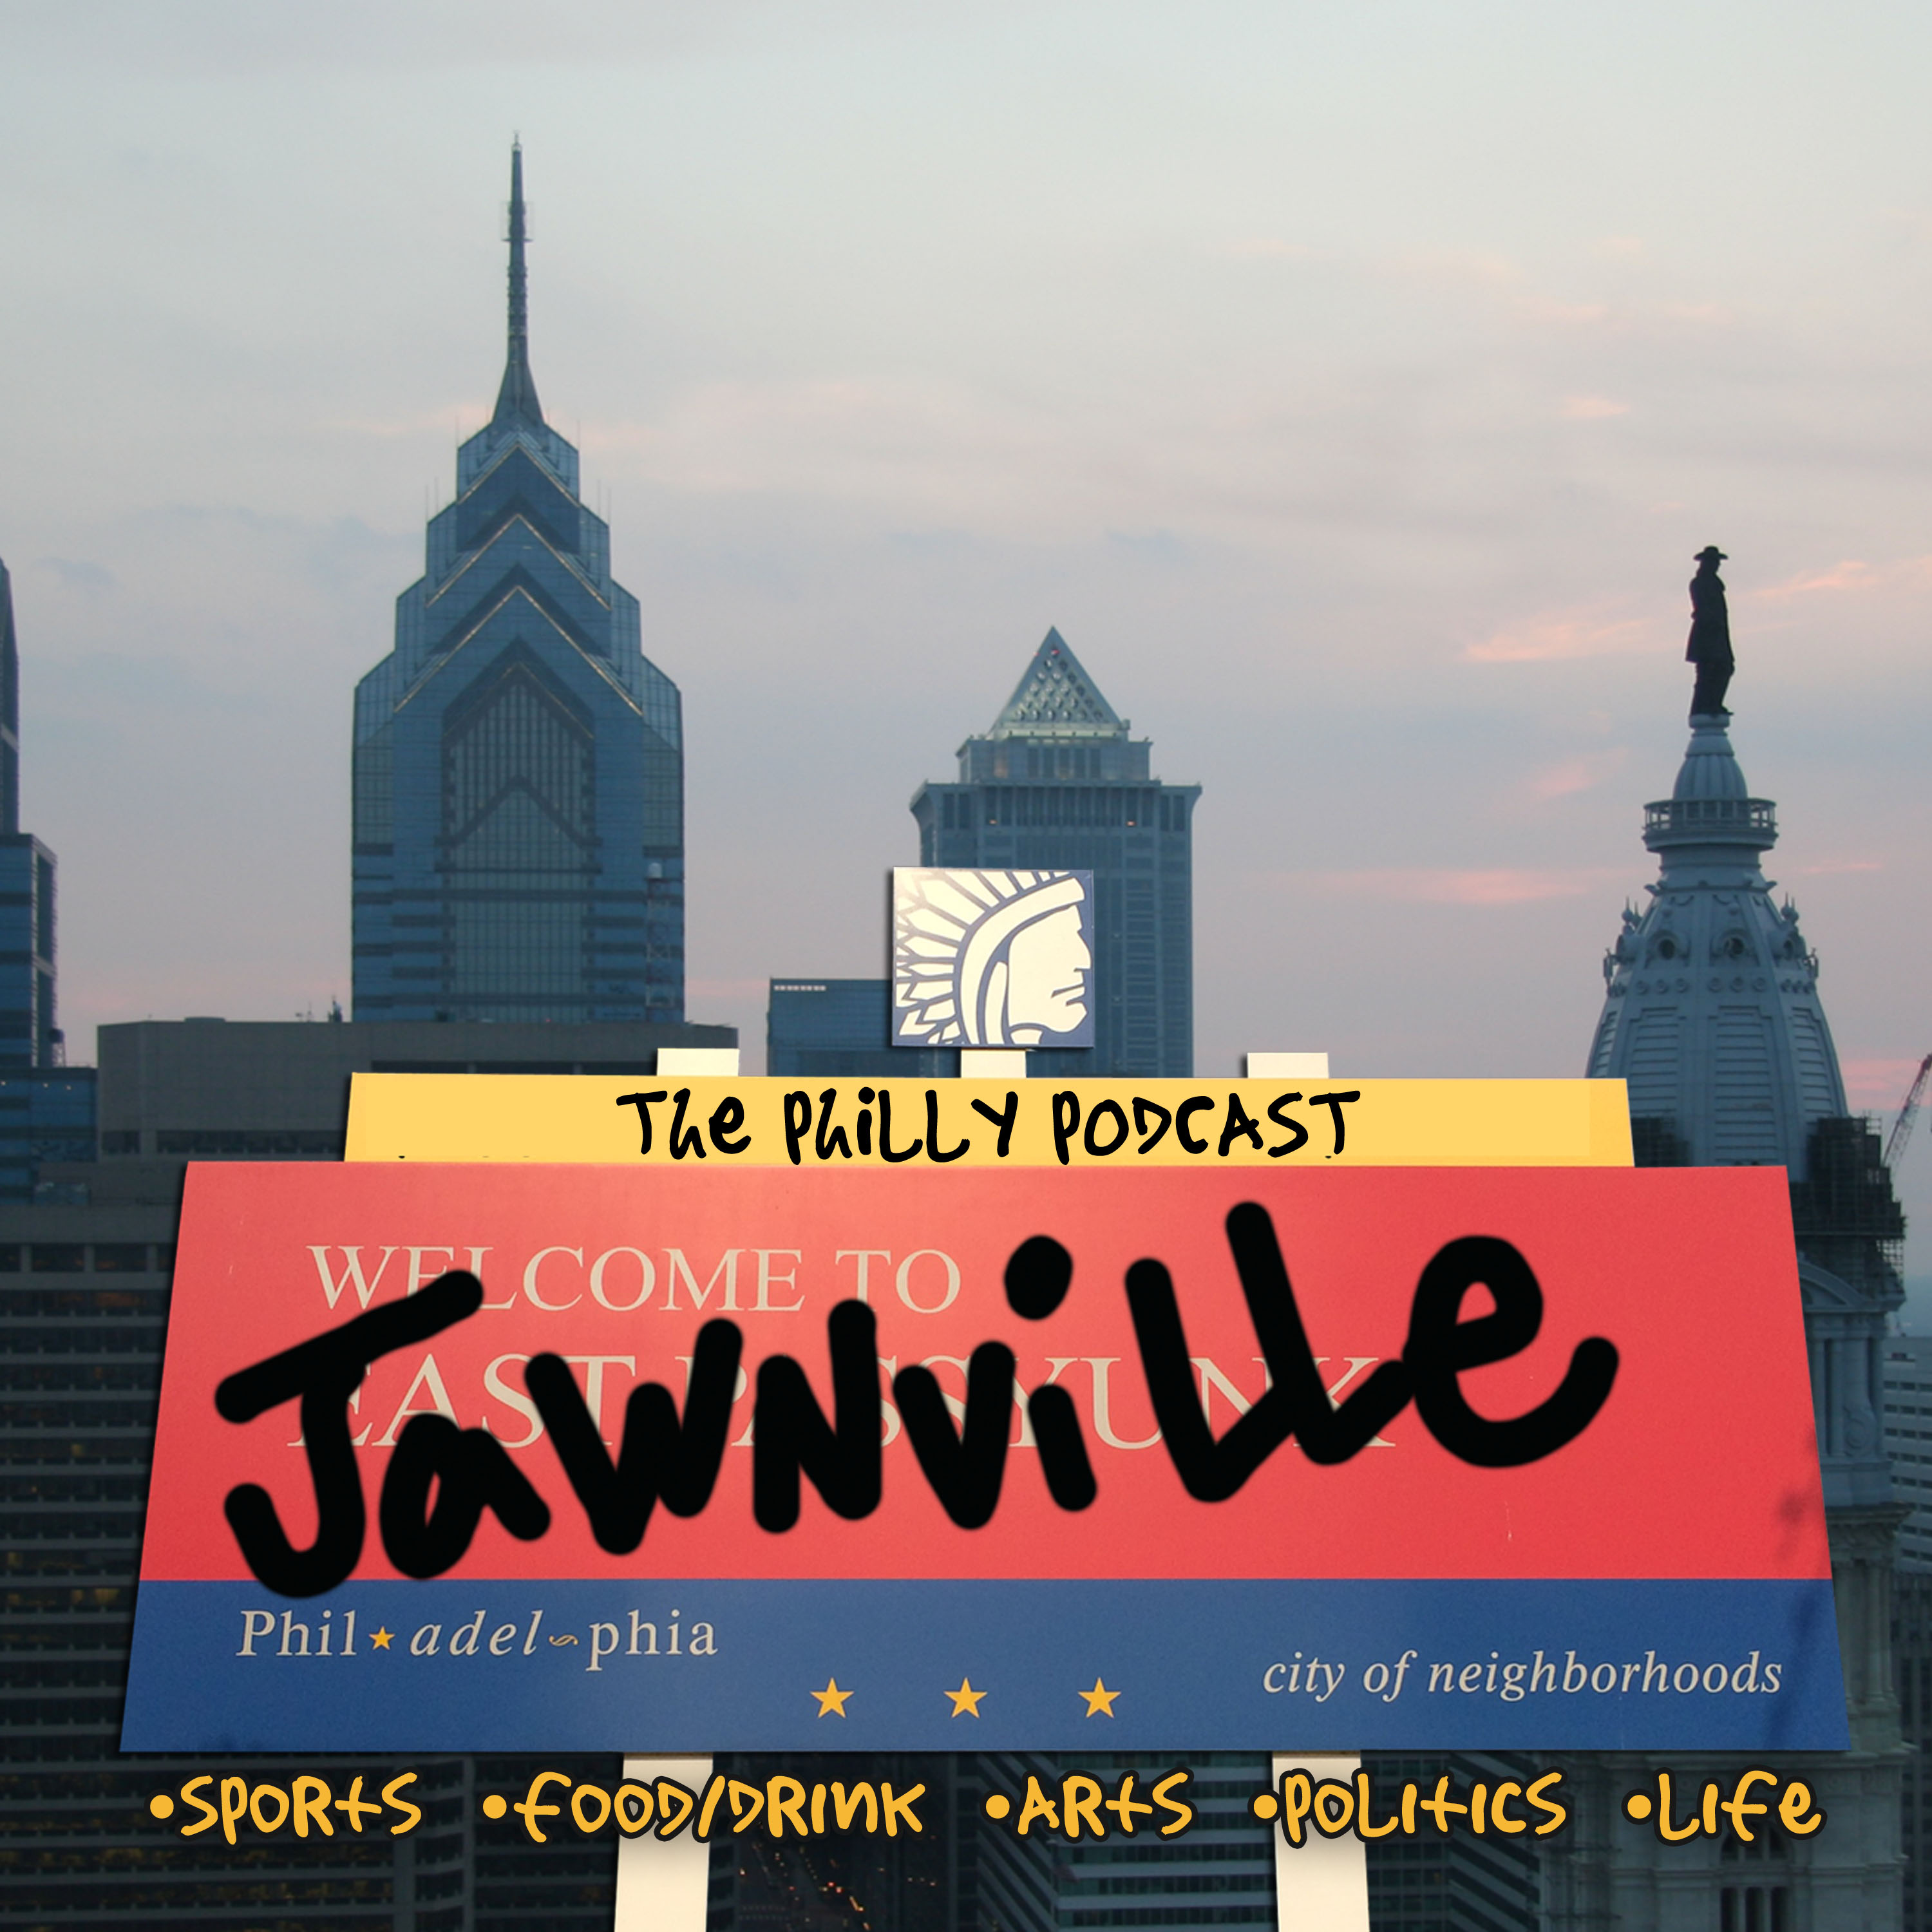 Jawnville: A Philadelphia Community Podcast